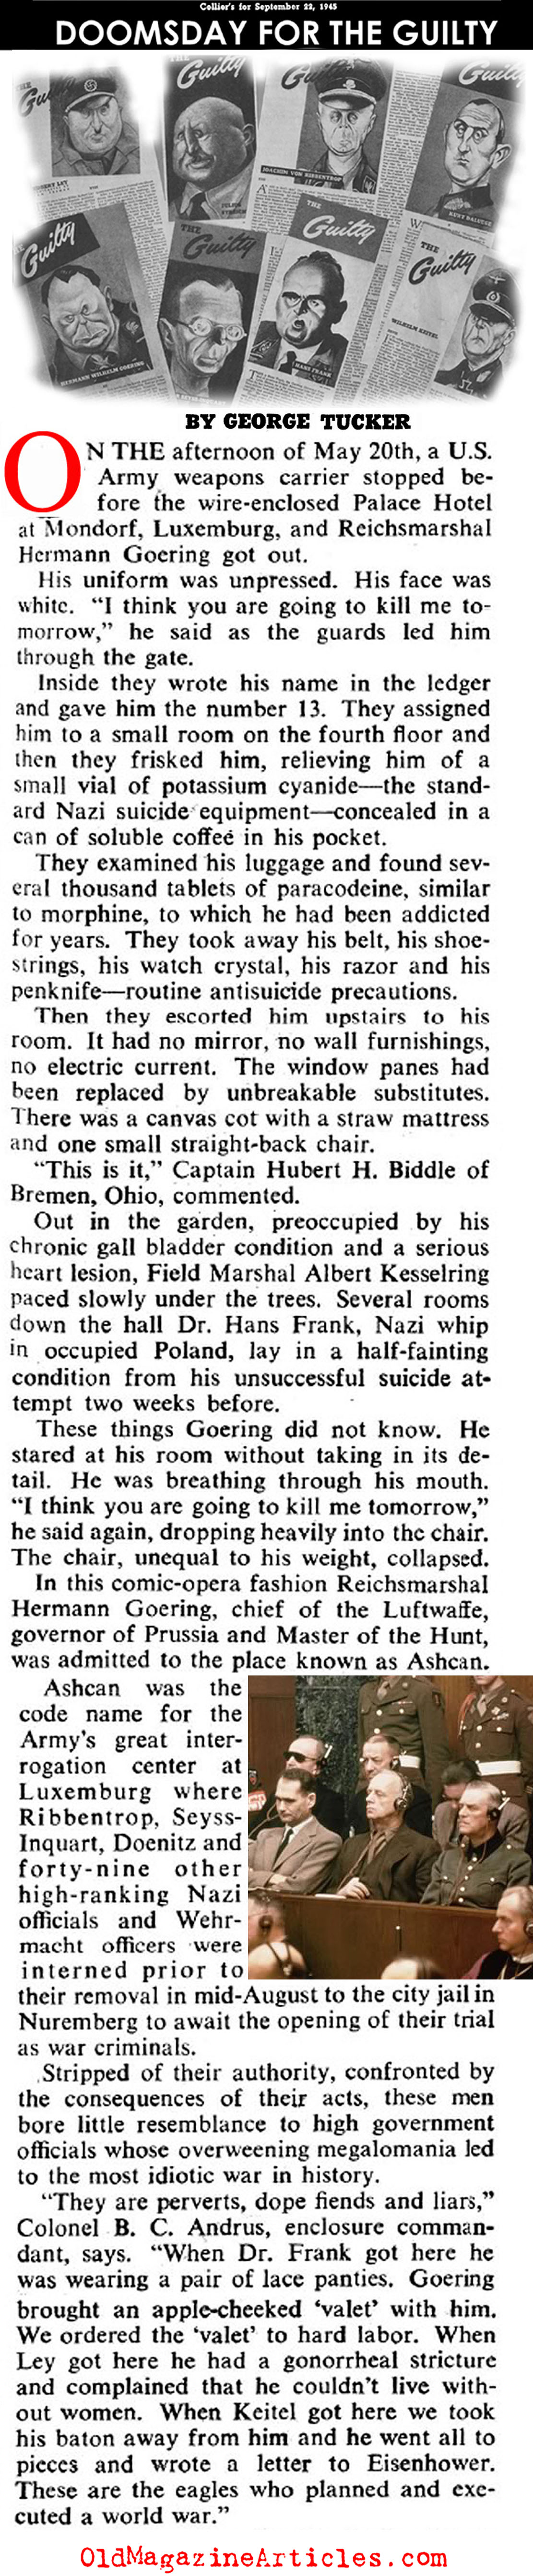 Reichsmarshal Herman Göering Imprisoned (Collier's Magazine, 1946)